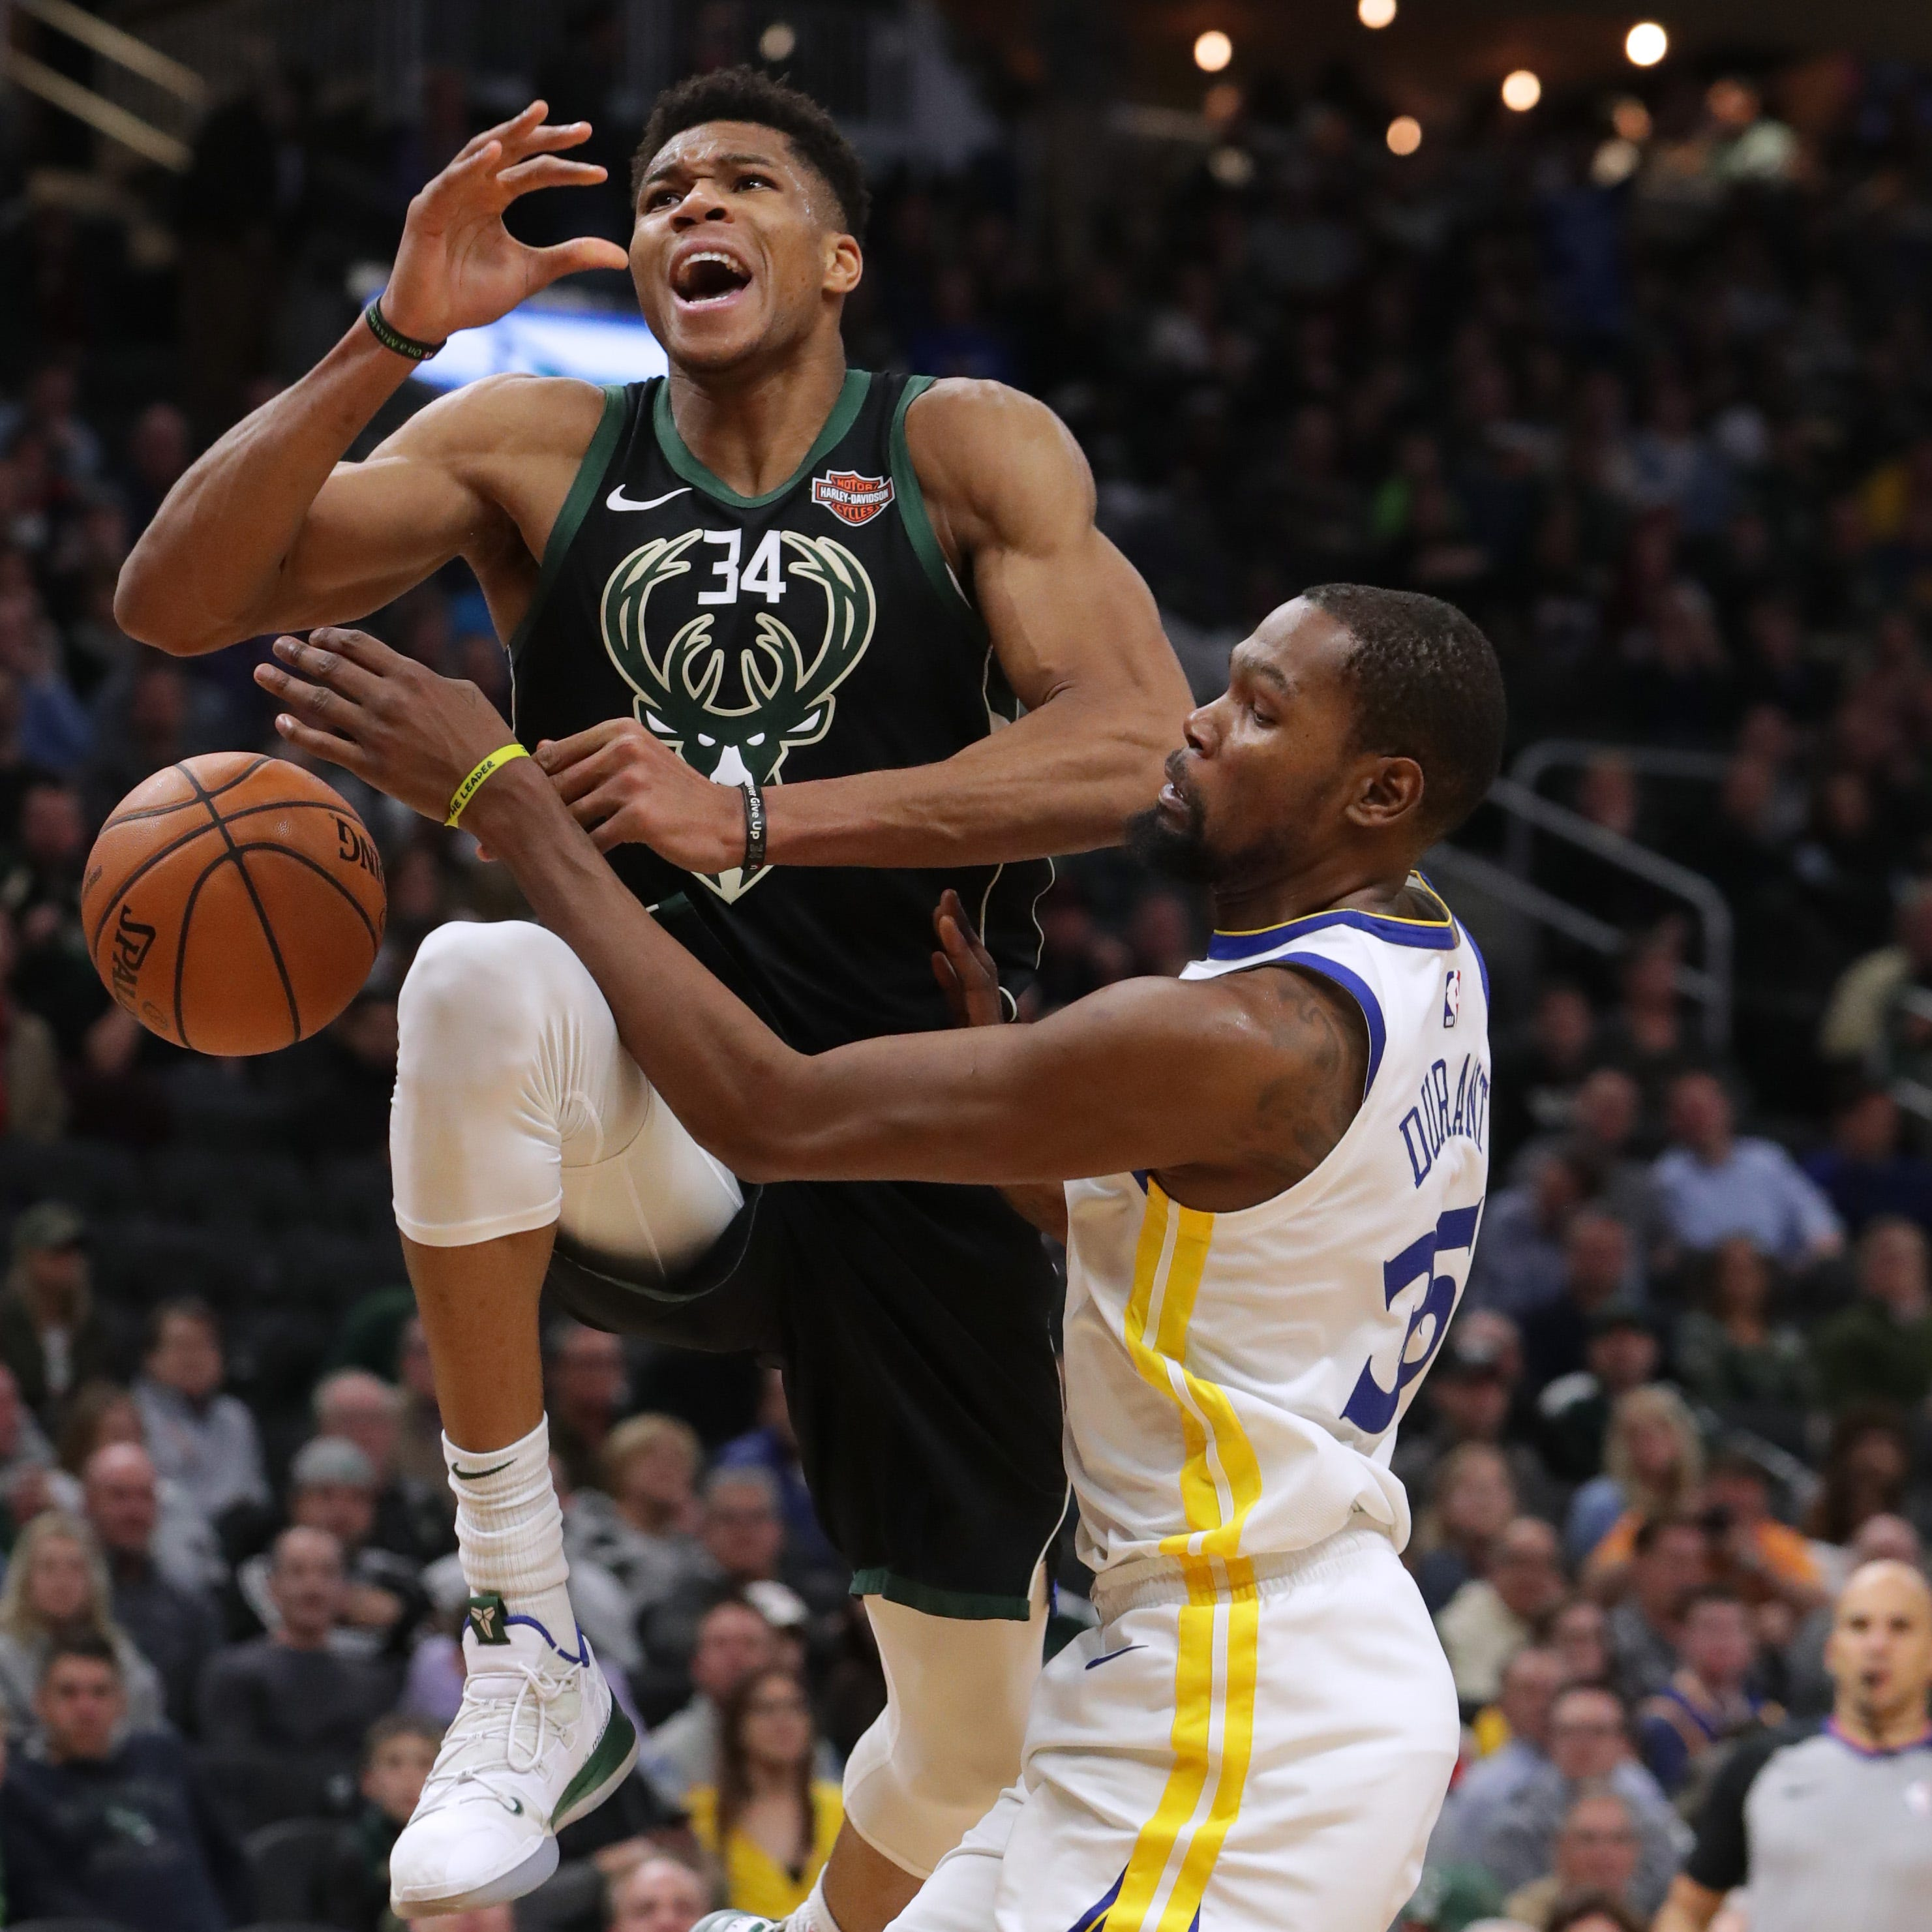 From facing the champs to visiting the NBA's best team, the Bucks need a quick turnaround